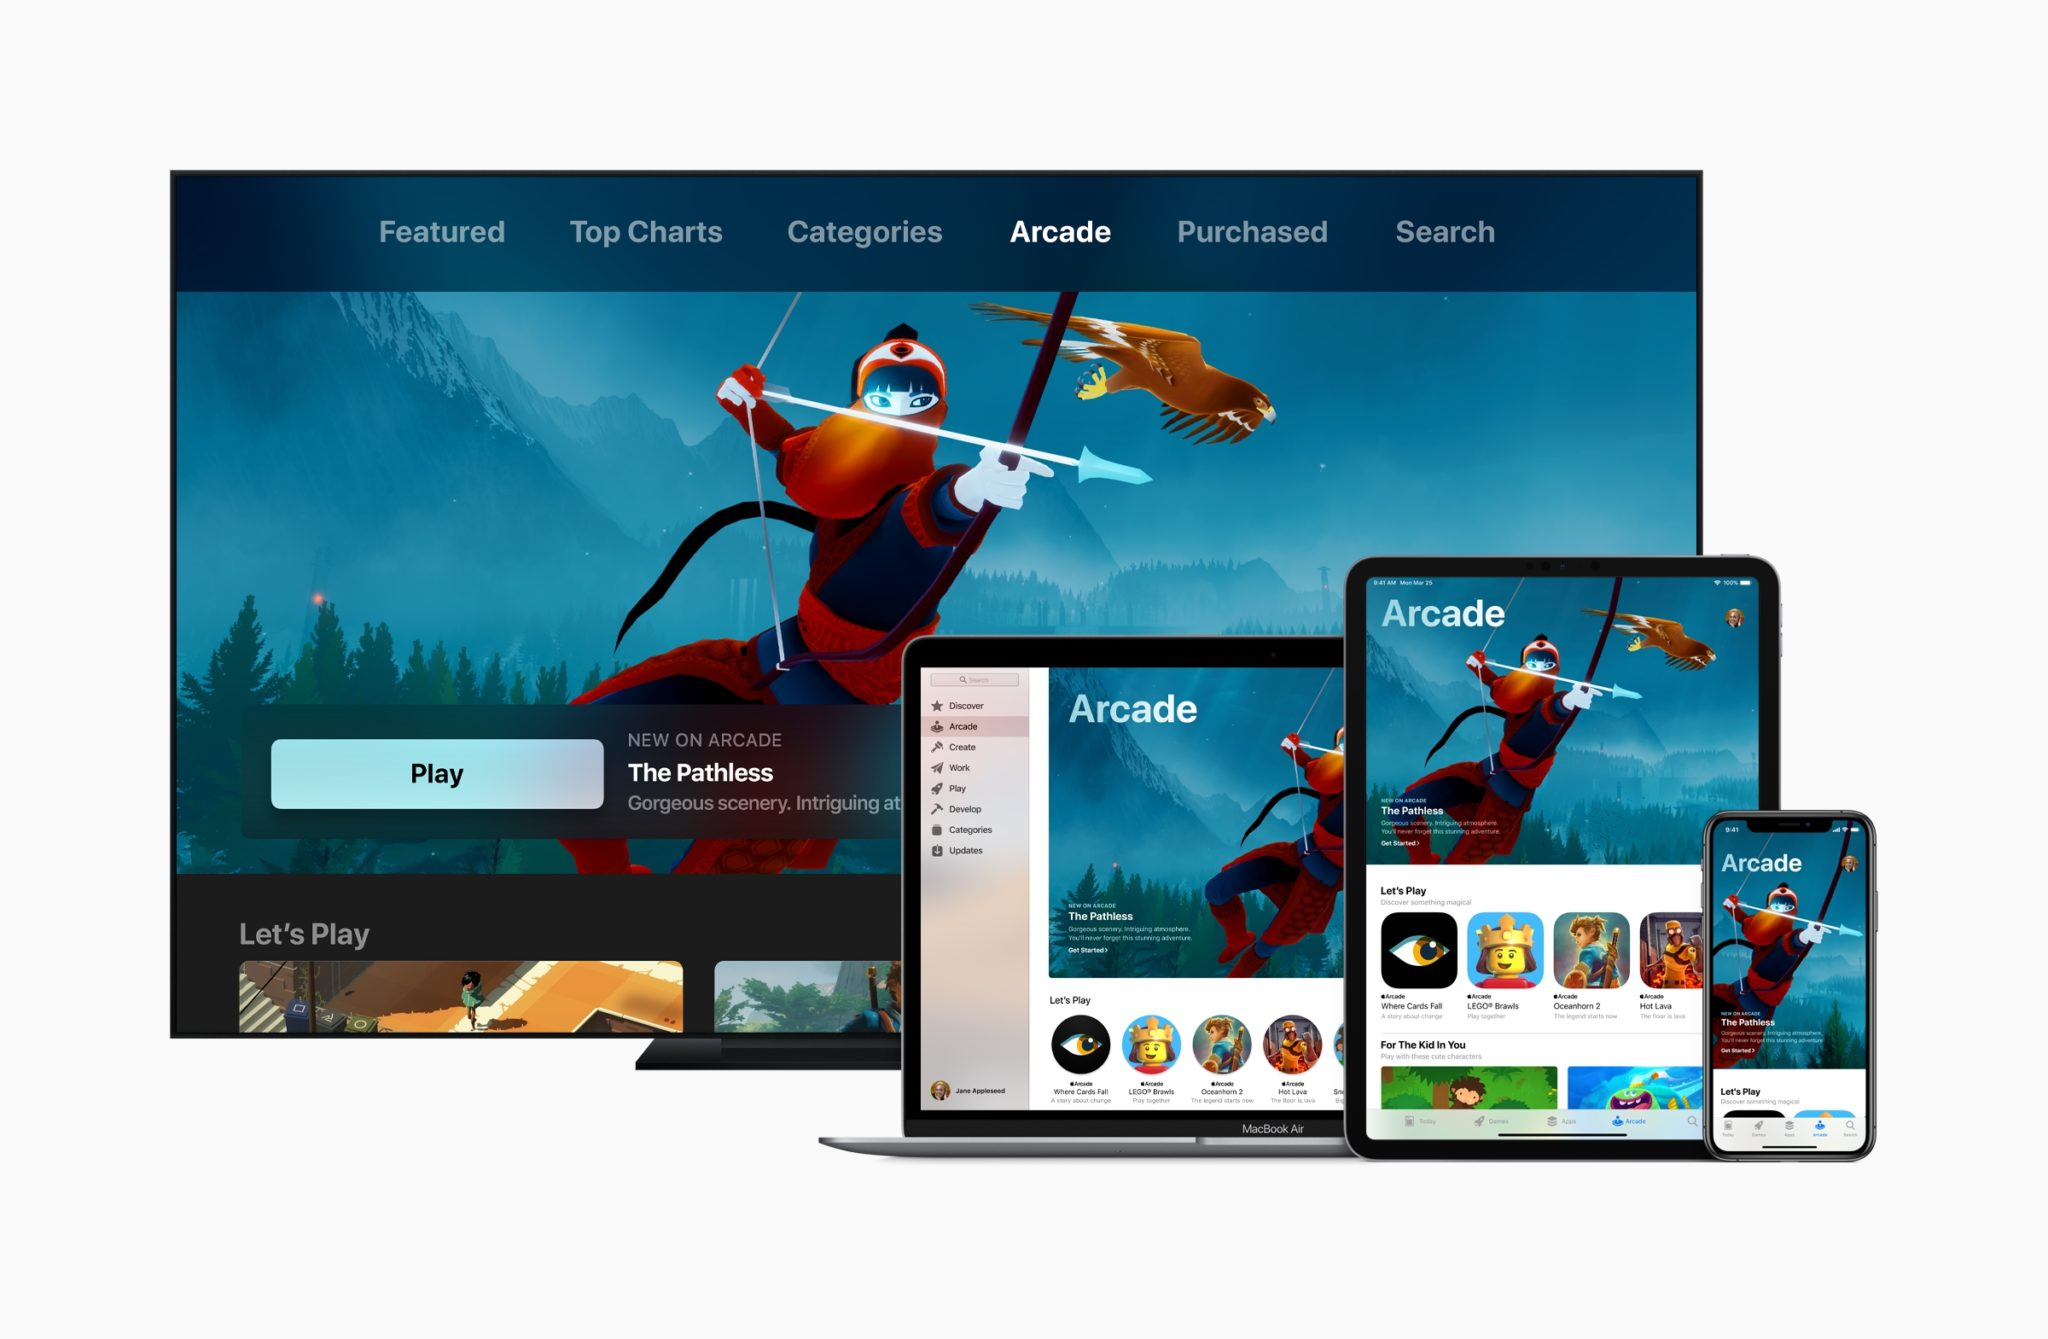 Apple introduces apple arcade apple tv ipad pro iphone xs macbook pro 03252019 - Apple predstavil predplatnú hernú službu Apple Arcade